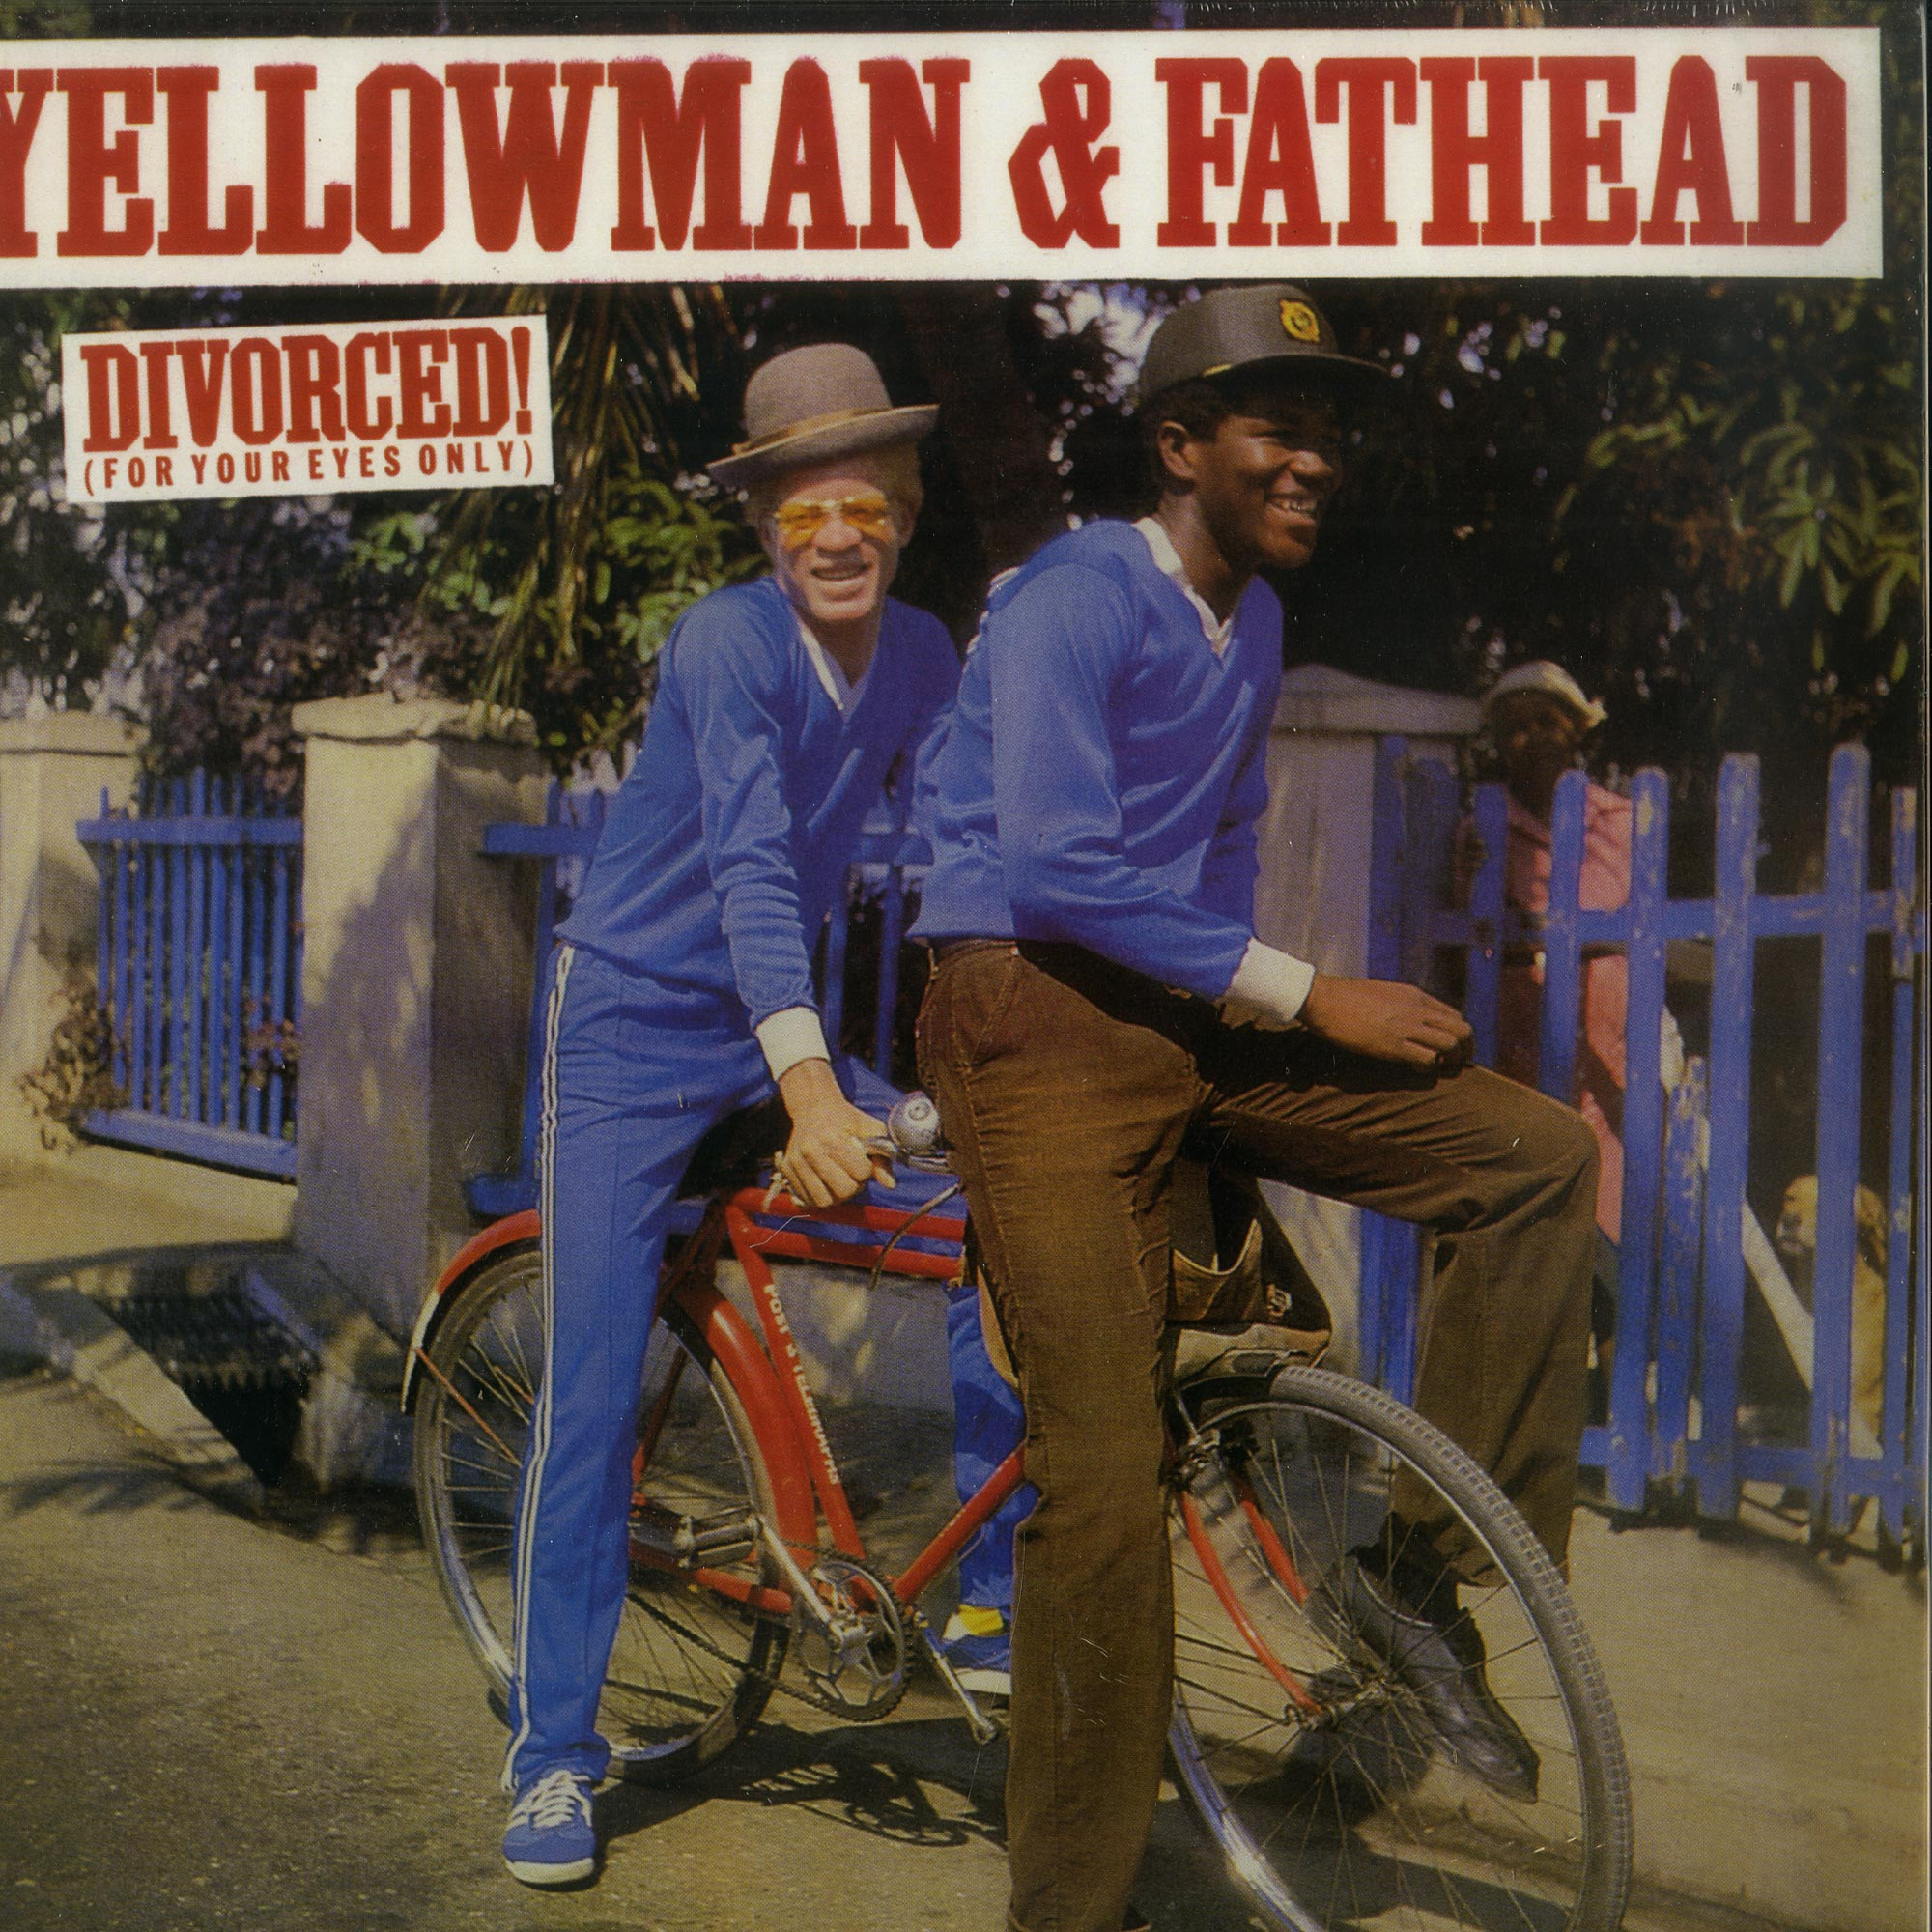 Yellowman & Fathead - DIVORCED